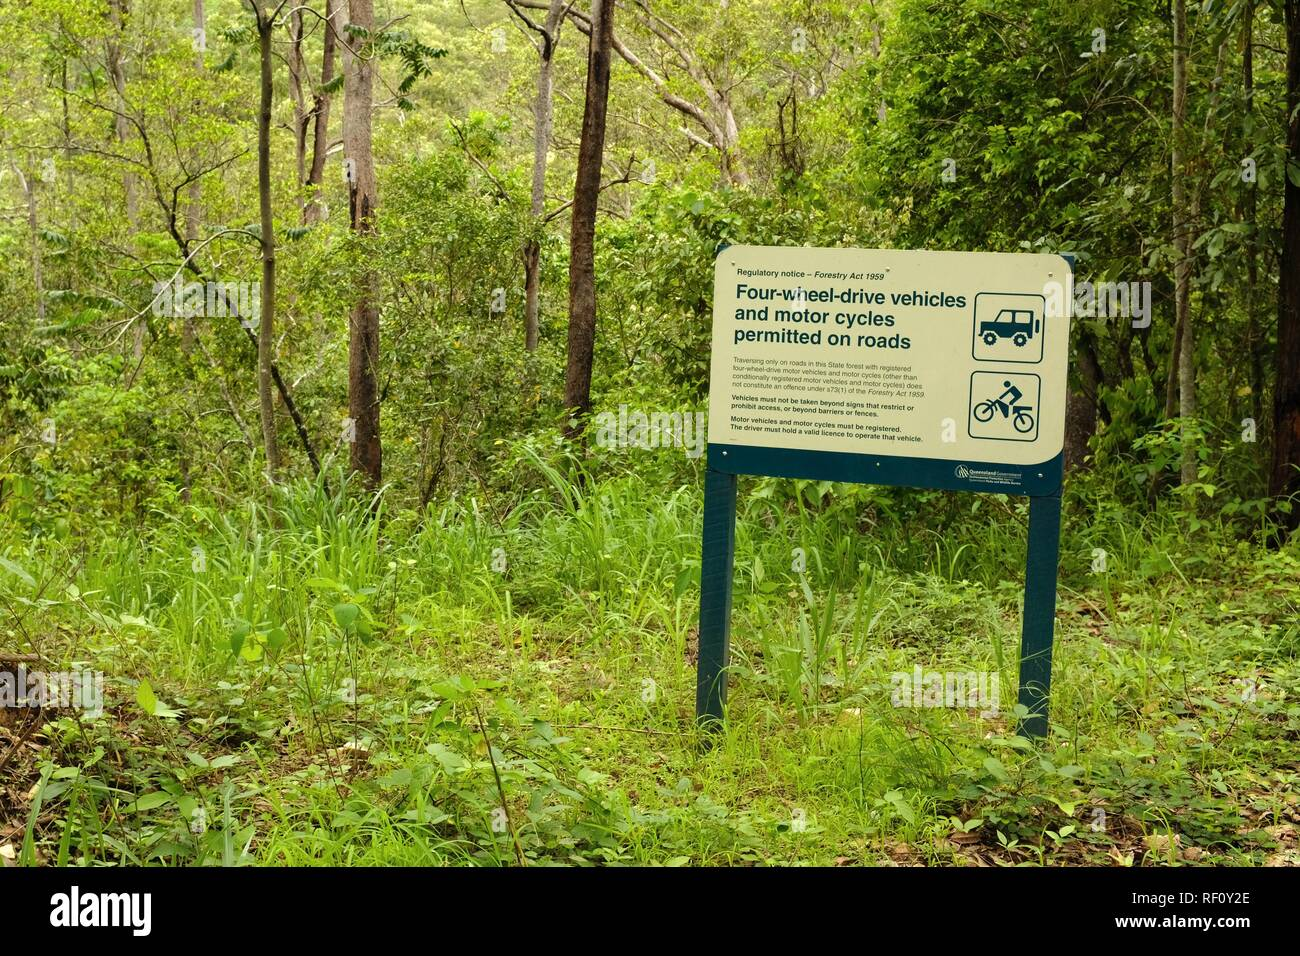 Four wheel drive vehicles and motor cycles permitted on roads sign, Mia Mia State Forest, Queensland, Australia - Stock Image